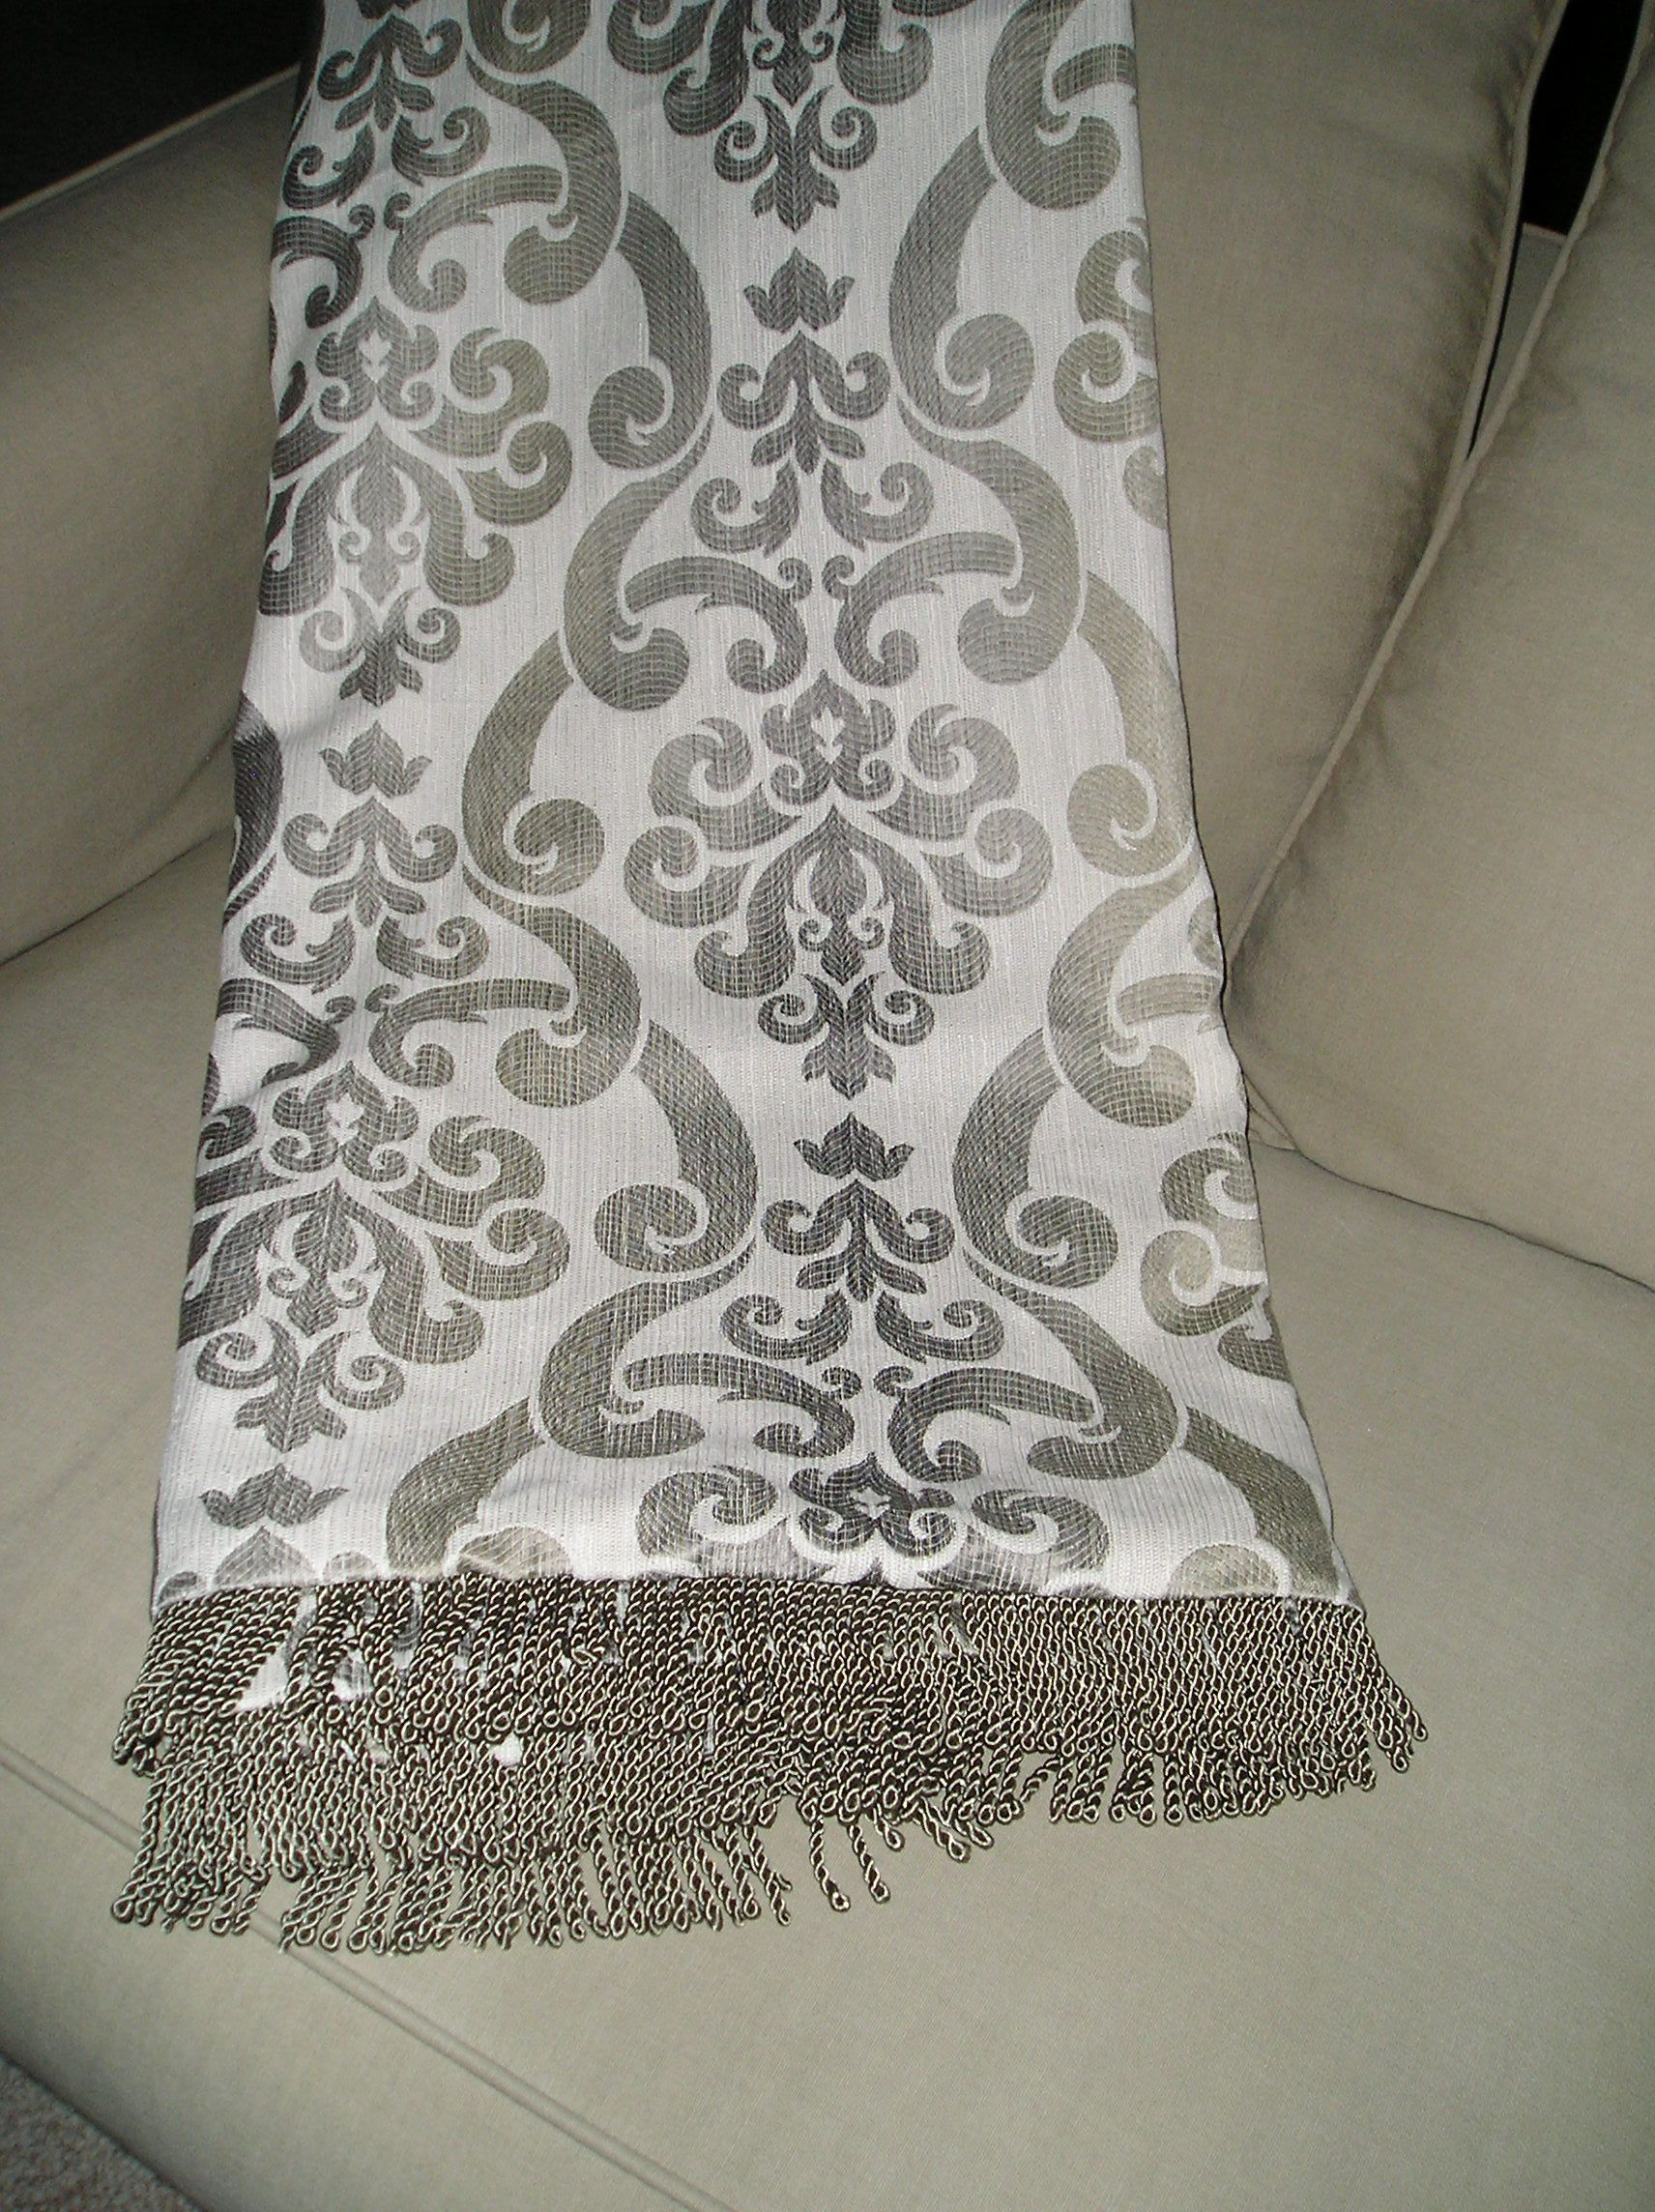 If you are looking for a unique wedding gift, please check this one of a kind throw out, there are many selections available on my website at www.alexandrasoriginals.com.  This throw is neutral with gray, cream, and hints of taupe in certain lights---would go anywhere.  Please contact me for pricing and details--ready for immediate shipment.  Would love to hear your comments, thanks so much for looking!